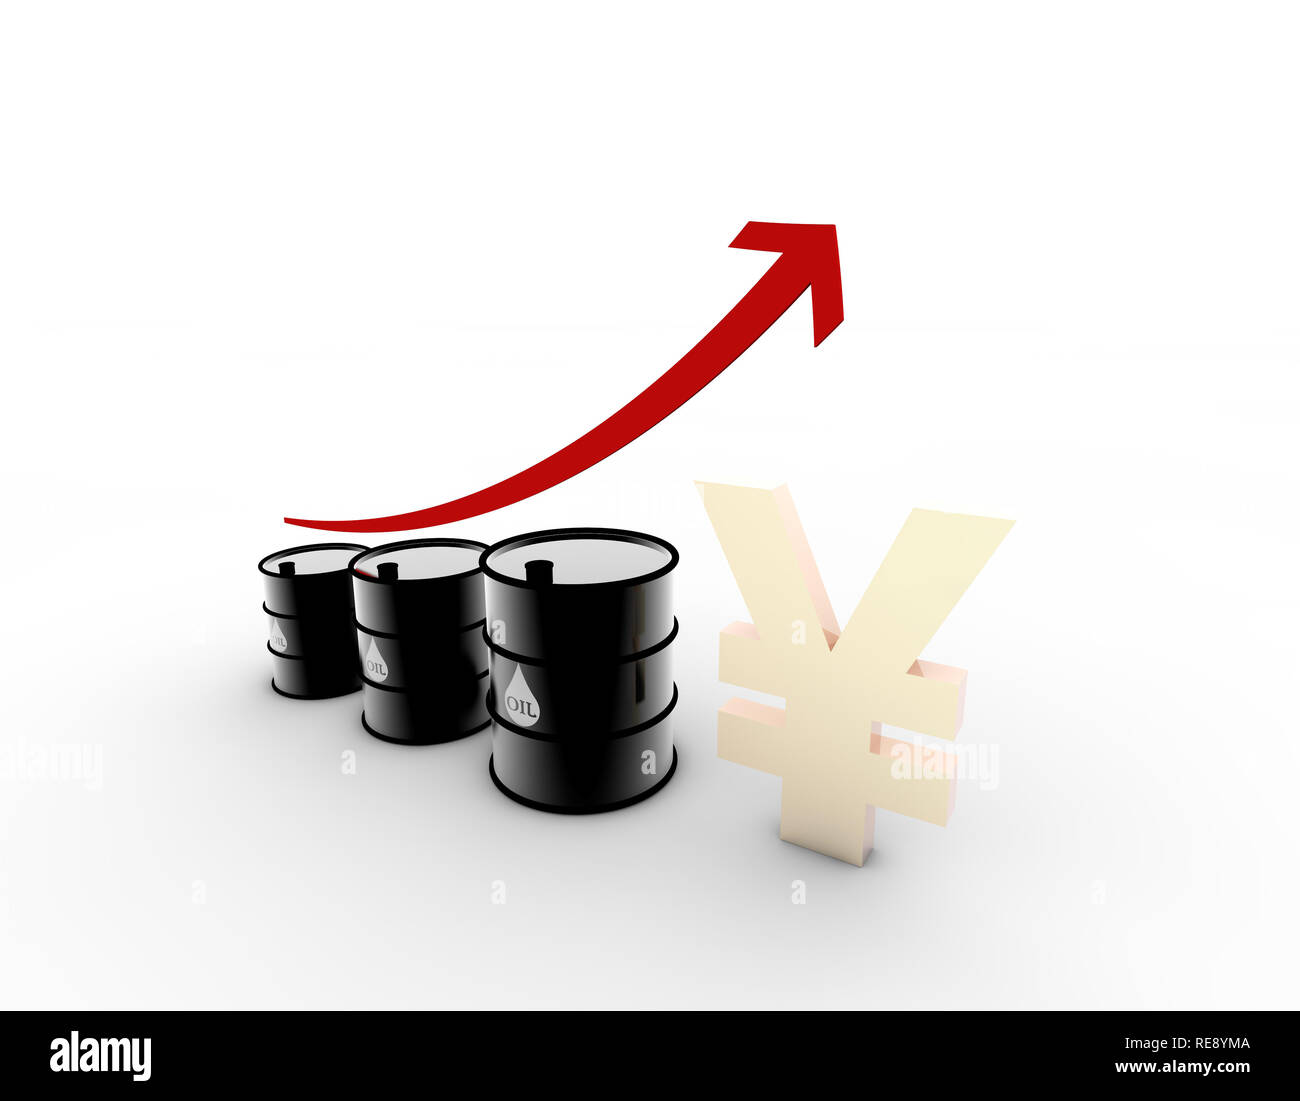 RMB and oil, energy and money, oil and RMB appreciation - Stock Image